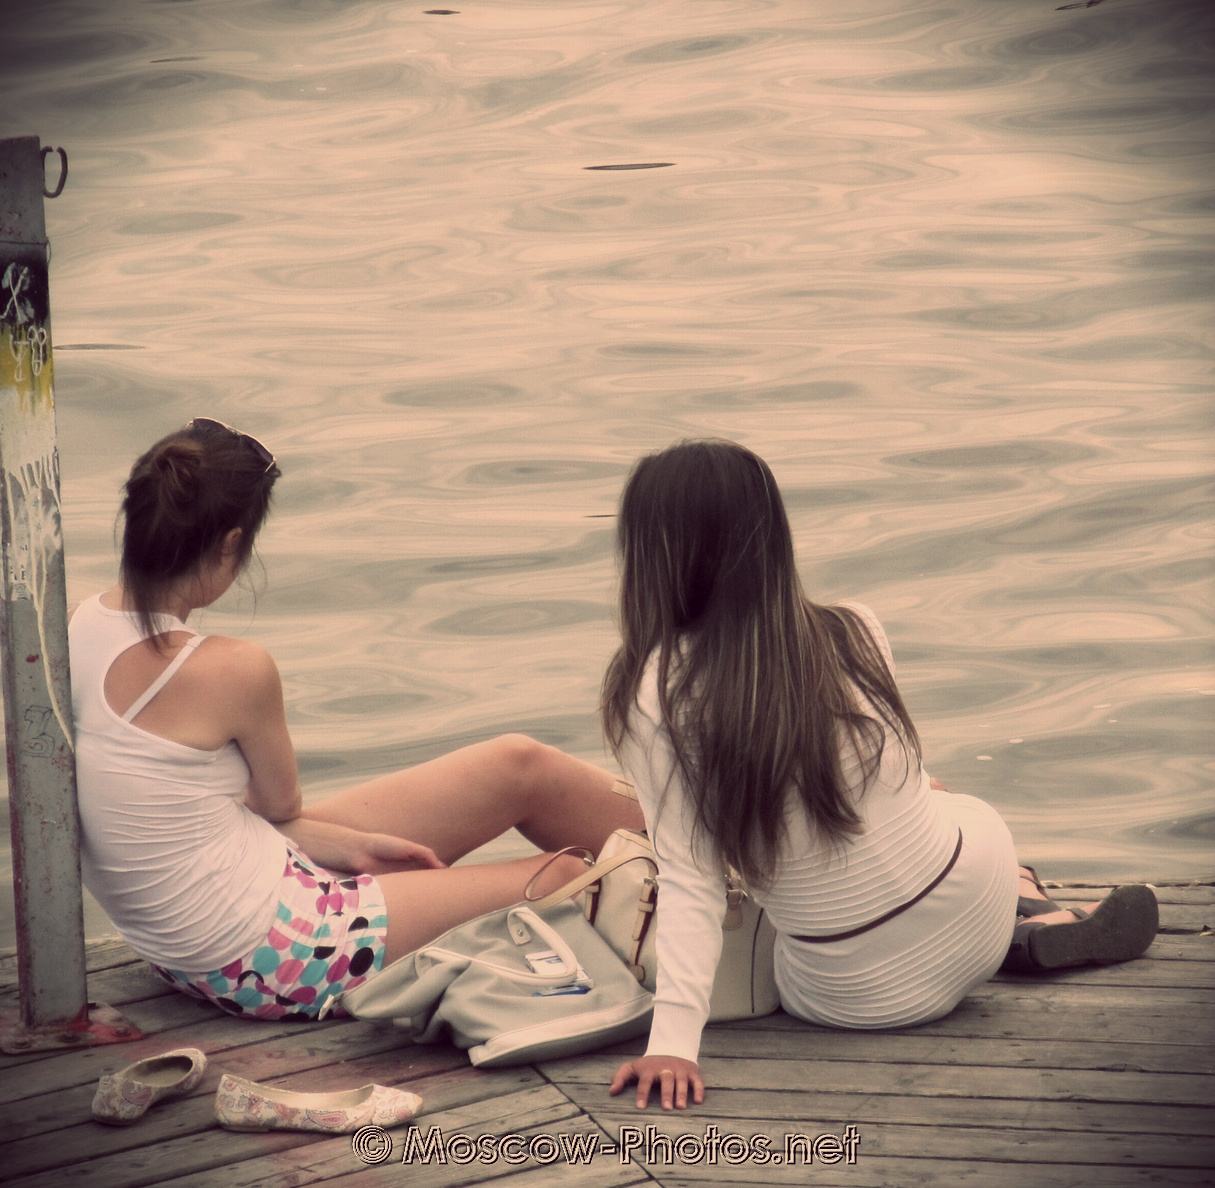 Relaxing girls at Moscow-river